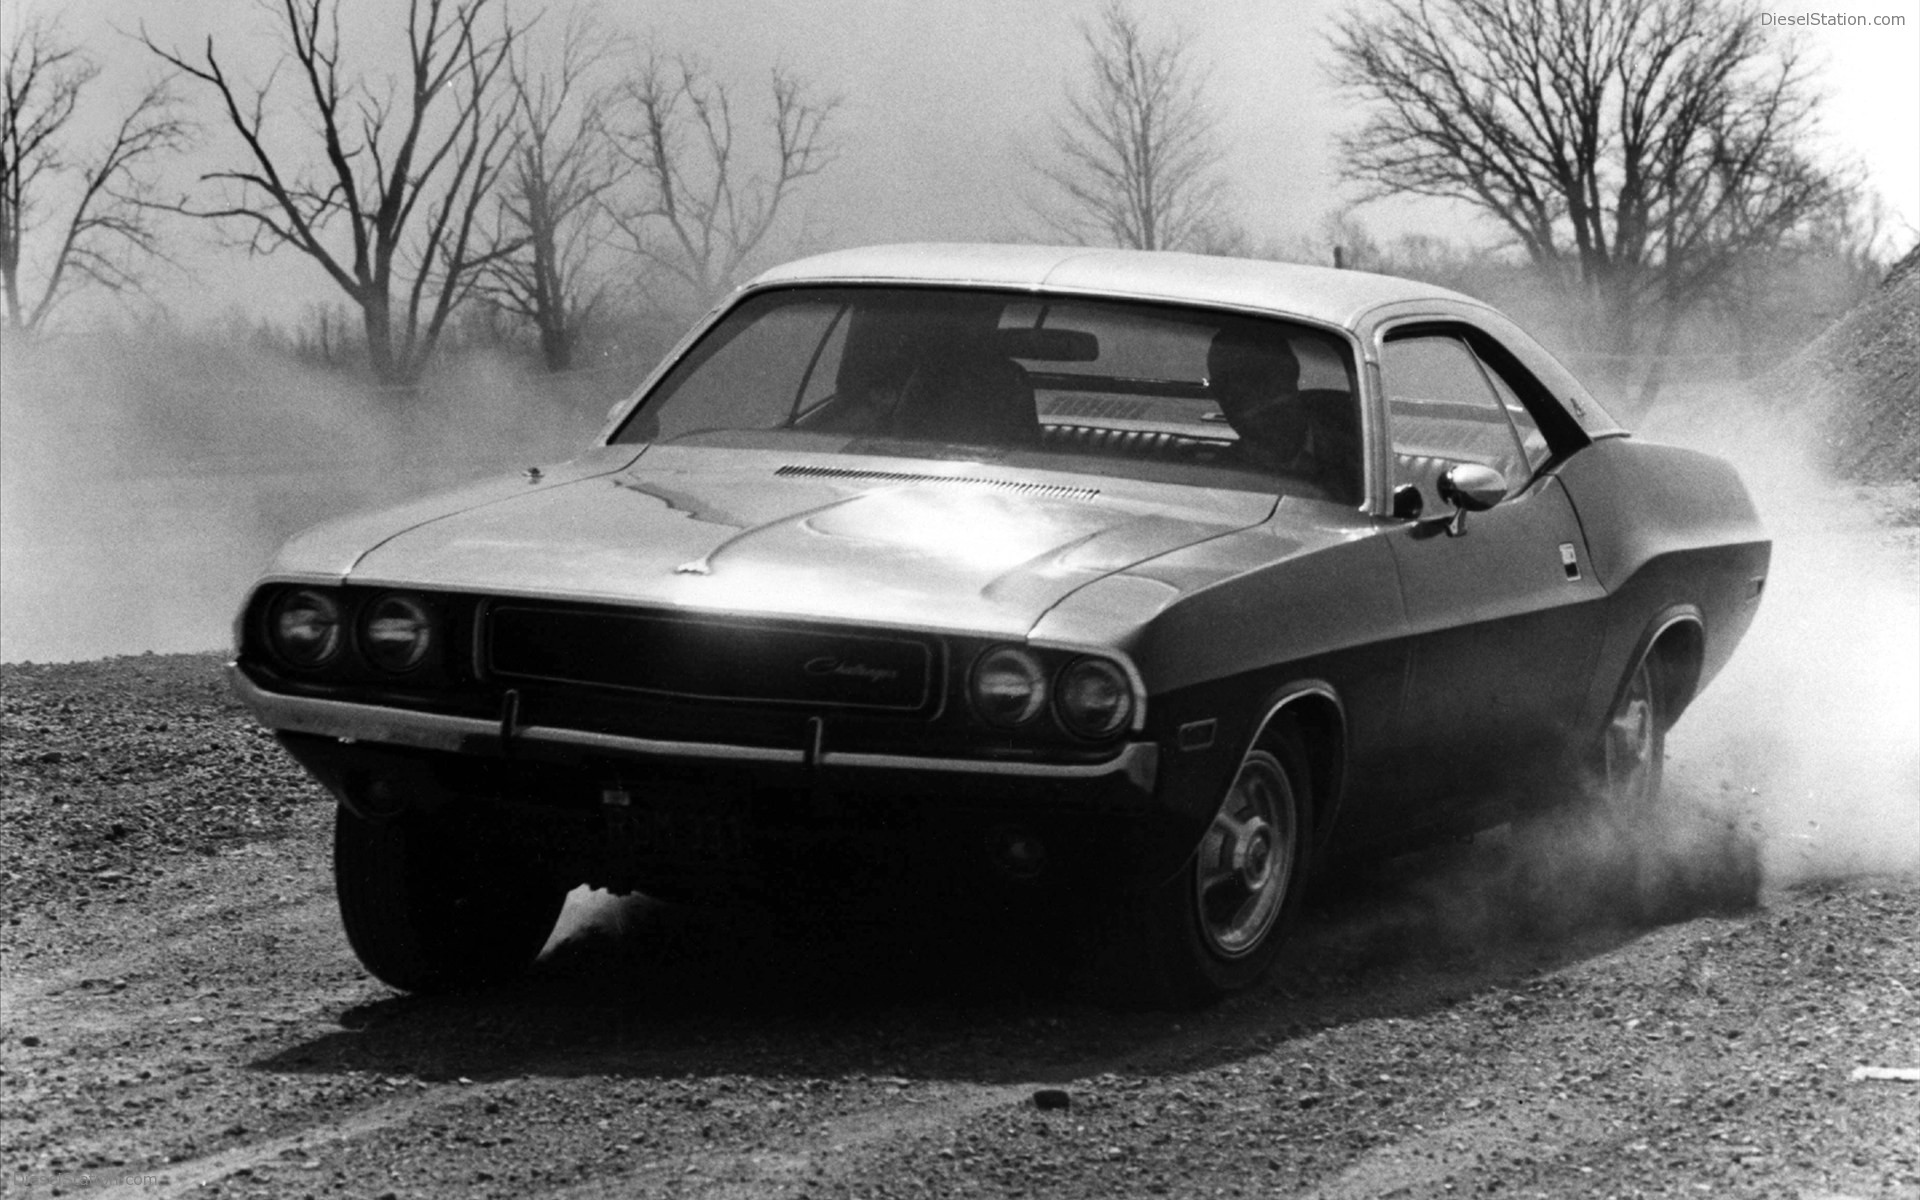 1970 Dodge Challenger Hd Wallpaper Background Image 1920x1200